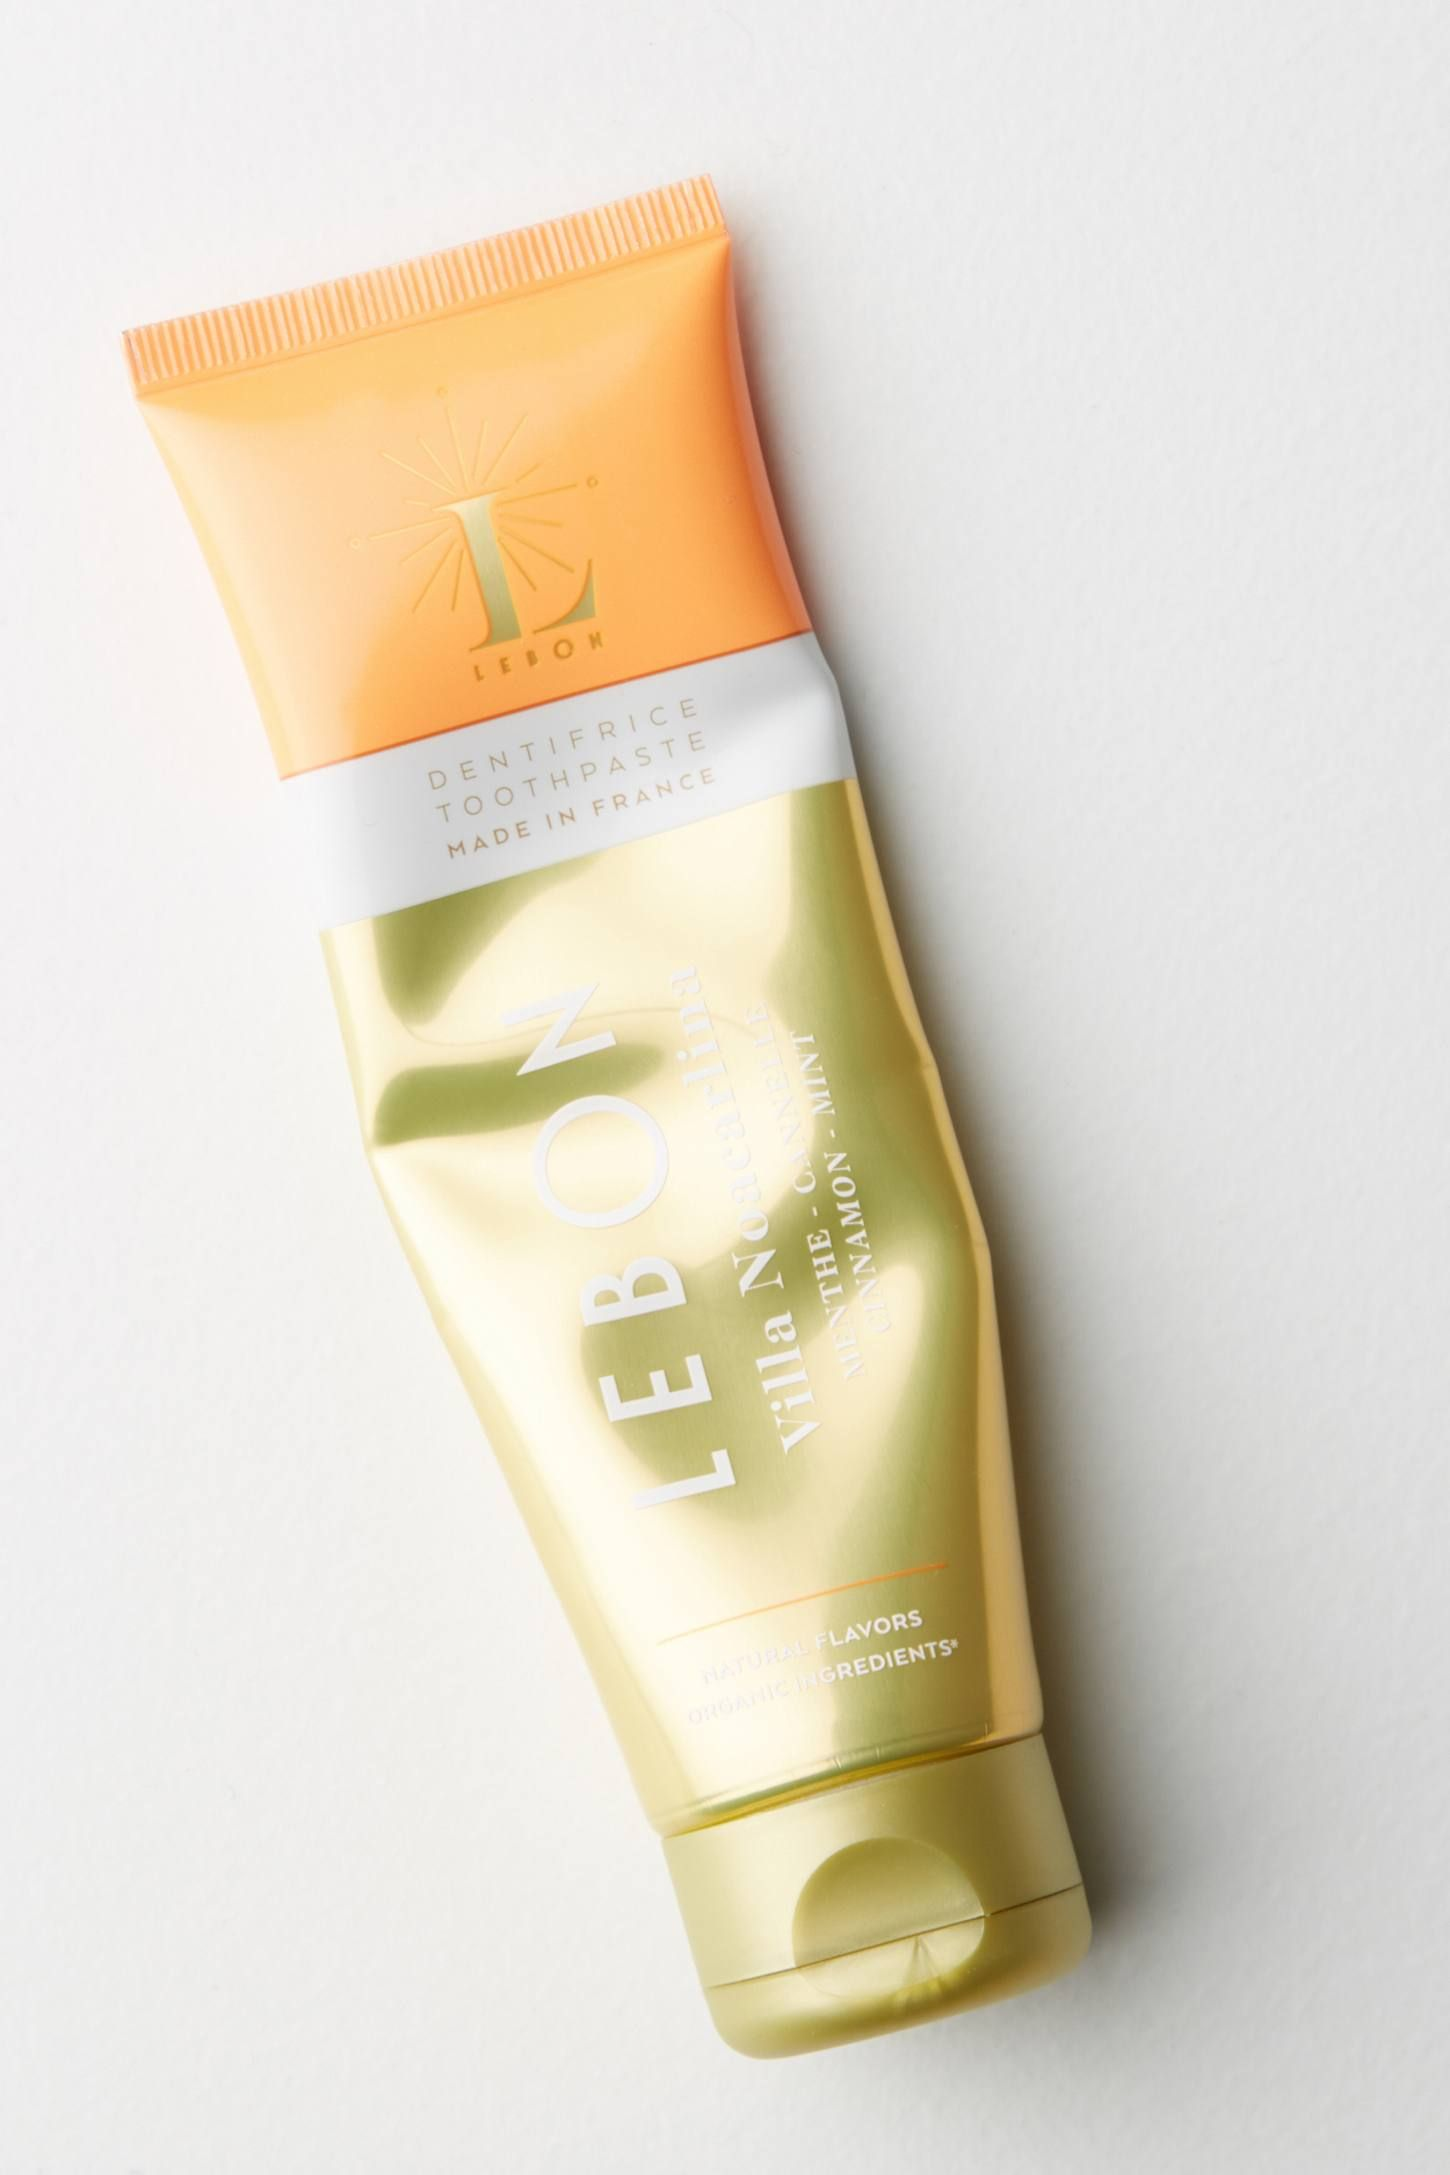 Shop The Lebon Toothpaste And More Anthropologie At Anthropologie Today Read Customer Reviews Discover Product Natural Pest Control Dog Shedding Pest Control